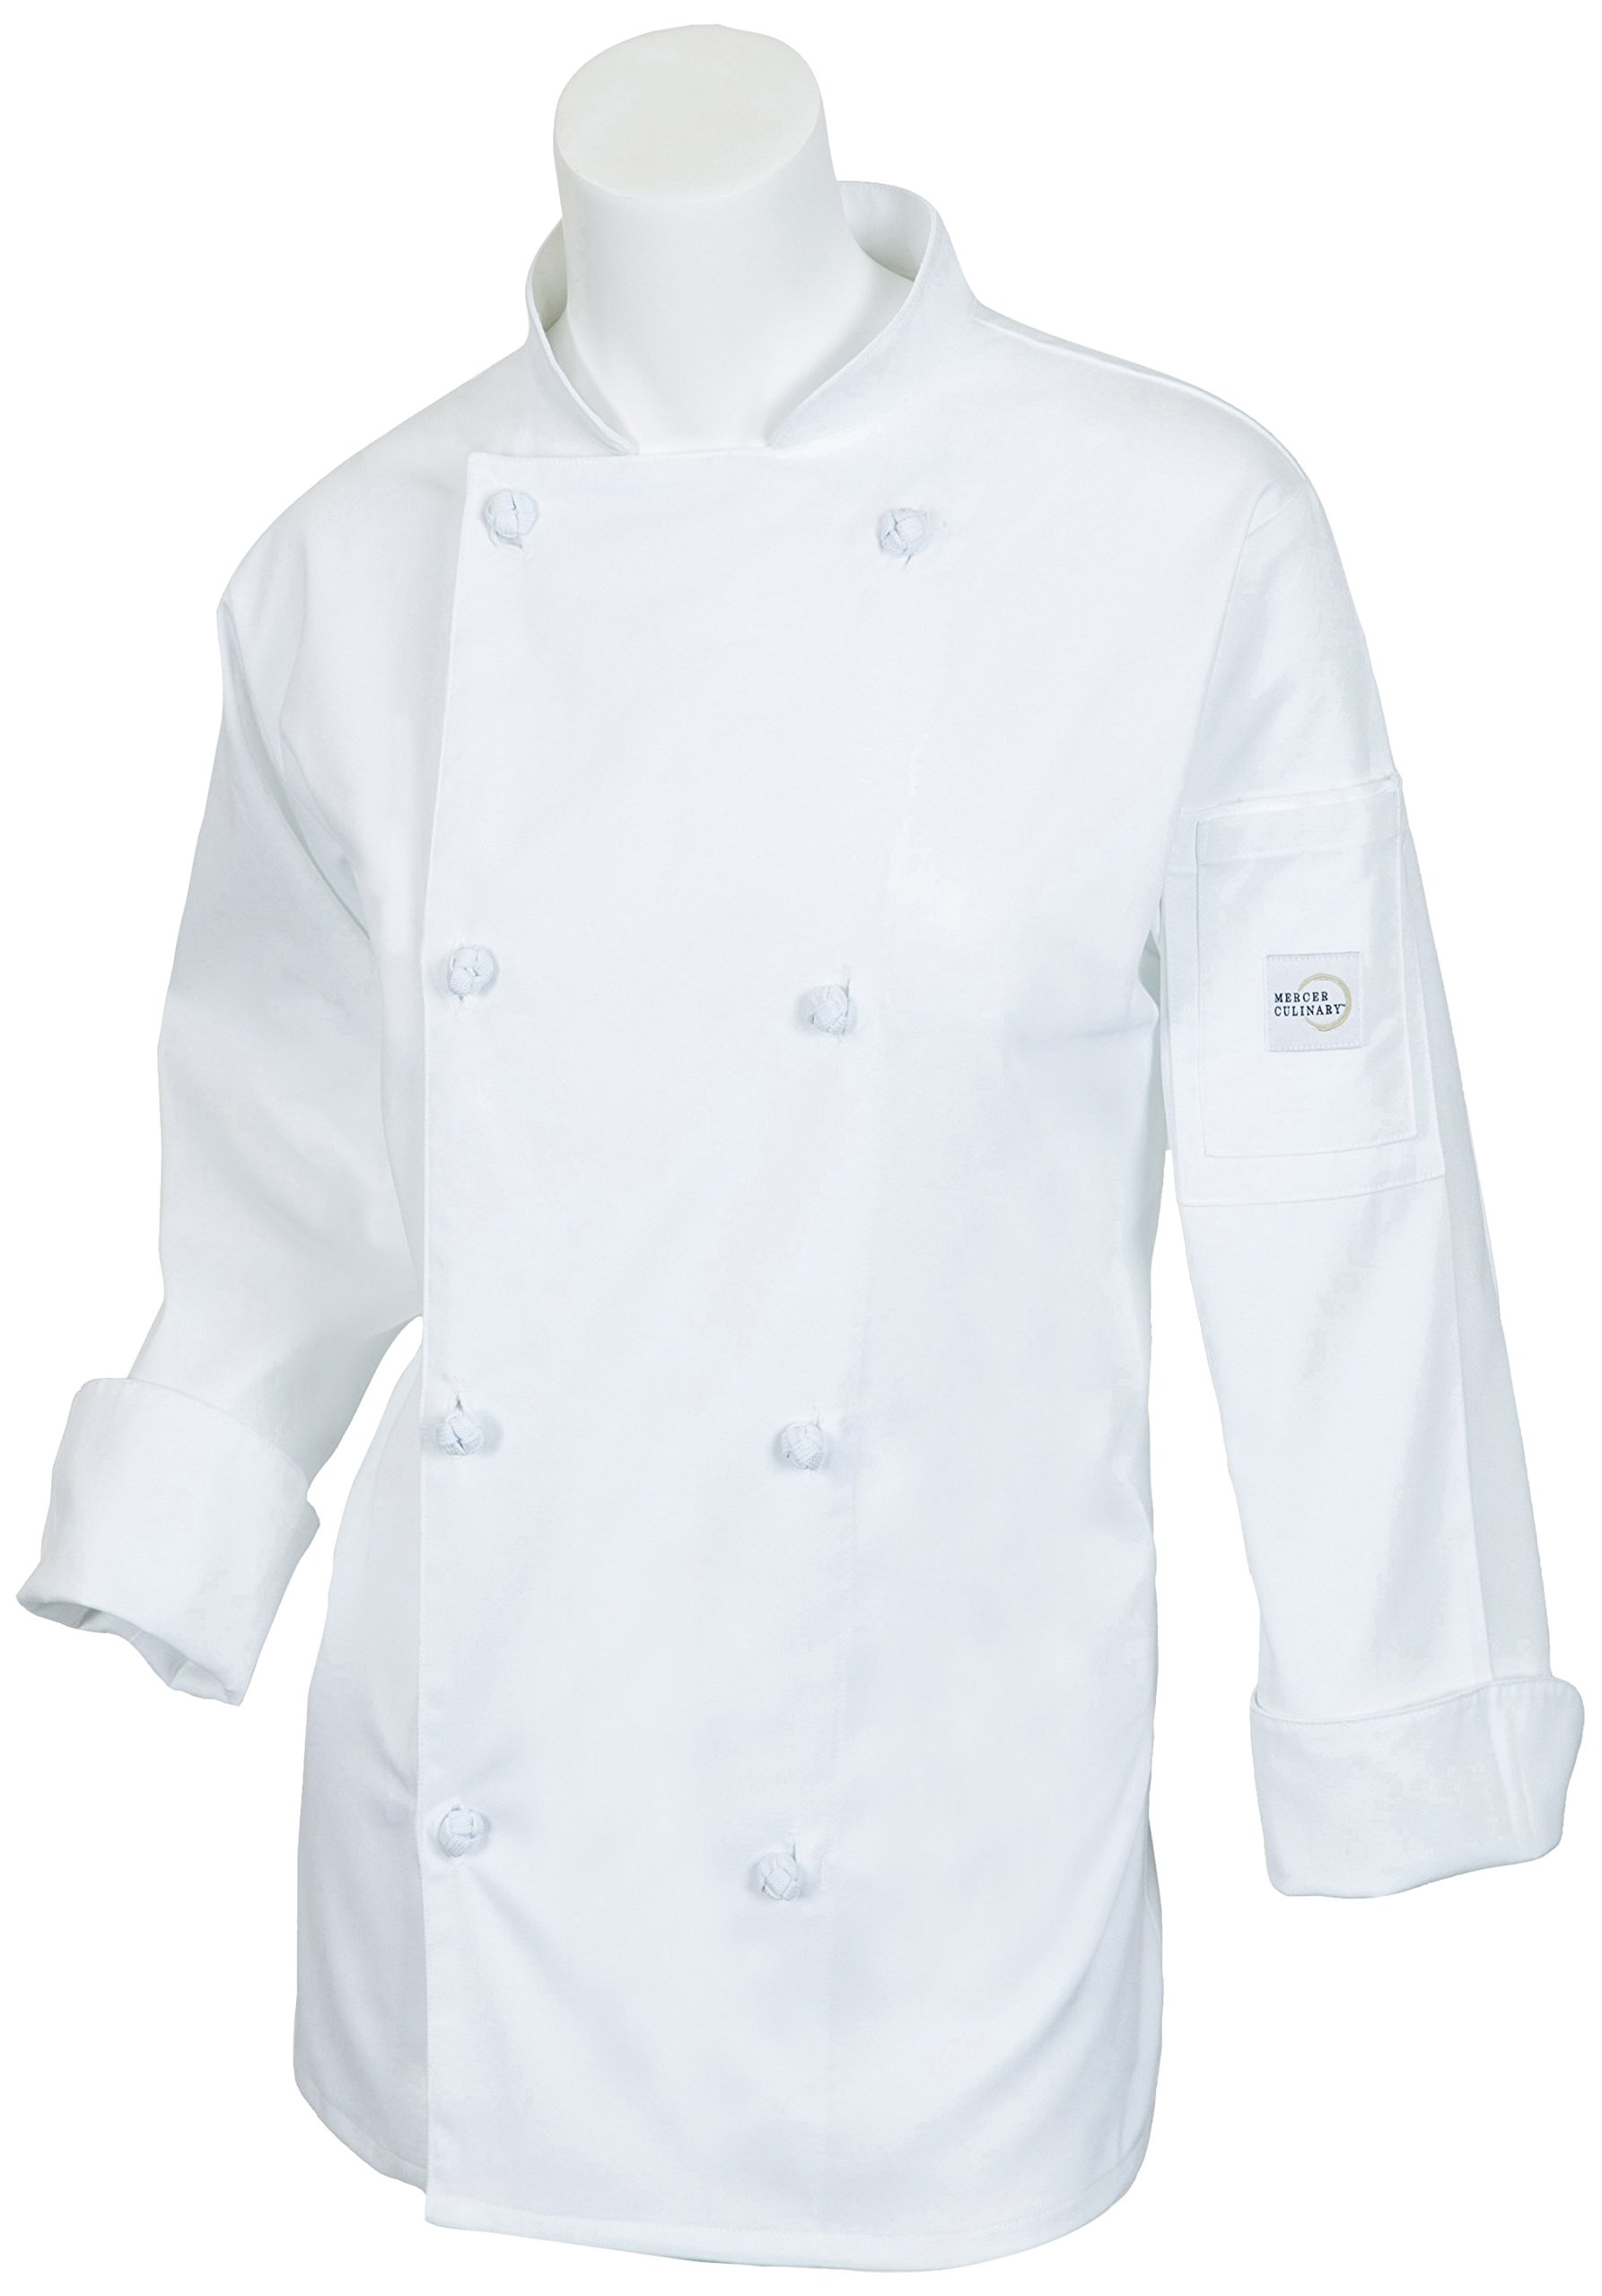 Mercer Culinary M61040WHXS Genesis Women's Jacket with Cloth Knot Buttons, X-Small, White by Mercer Culinary